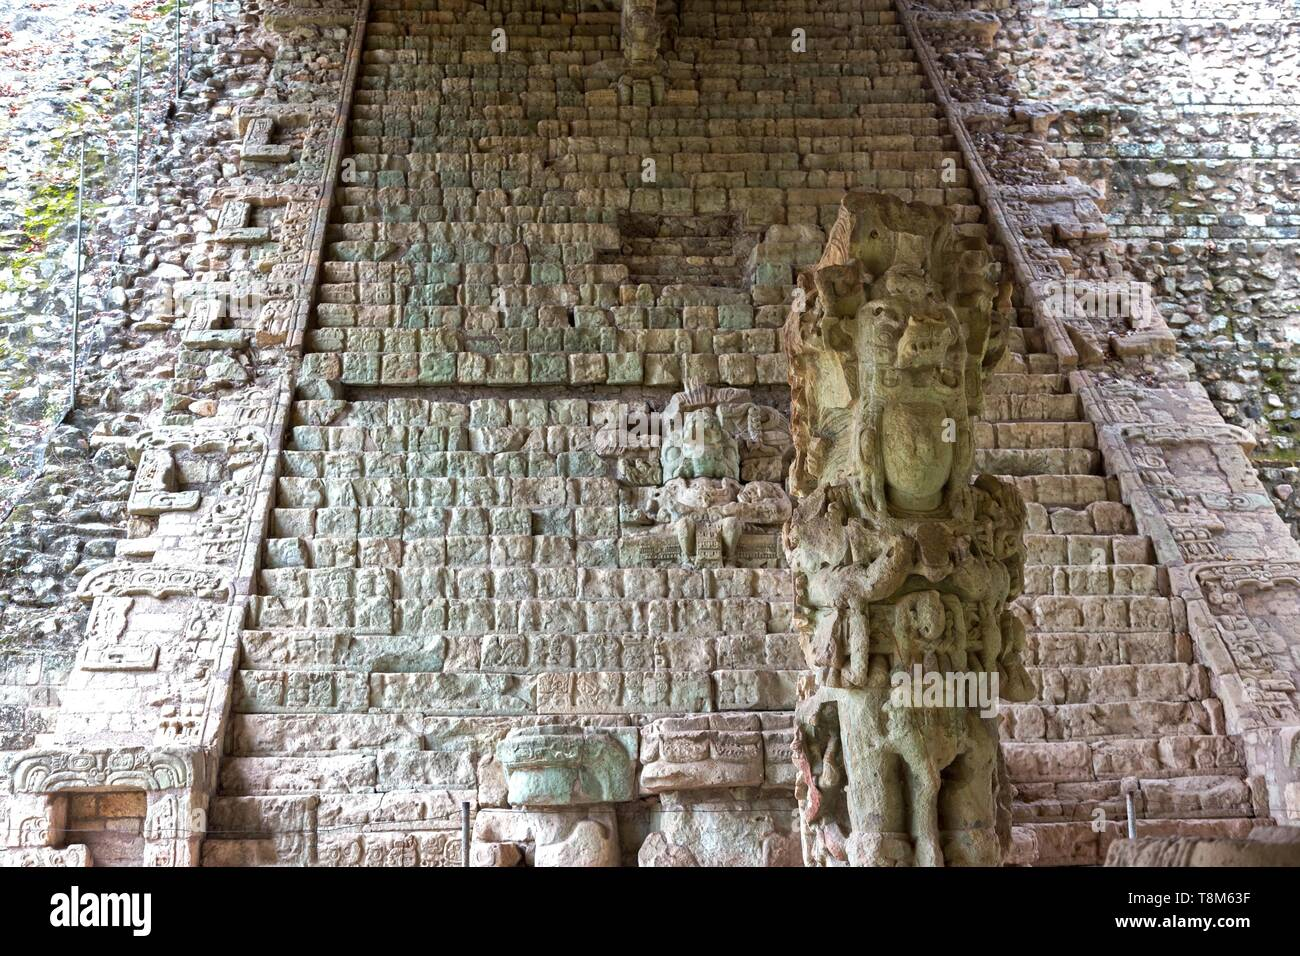 Hieroglyphic Stairway, a Staircase Full of Ancient Mayan Civilization Text in World Famous Archeological Site Copan Ruins (Copan Ruinas) in Honduras - Stock Image